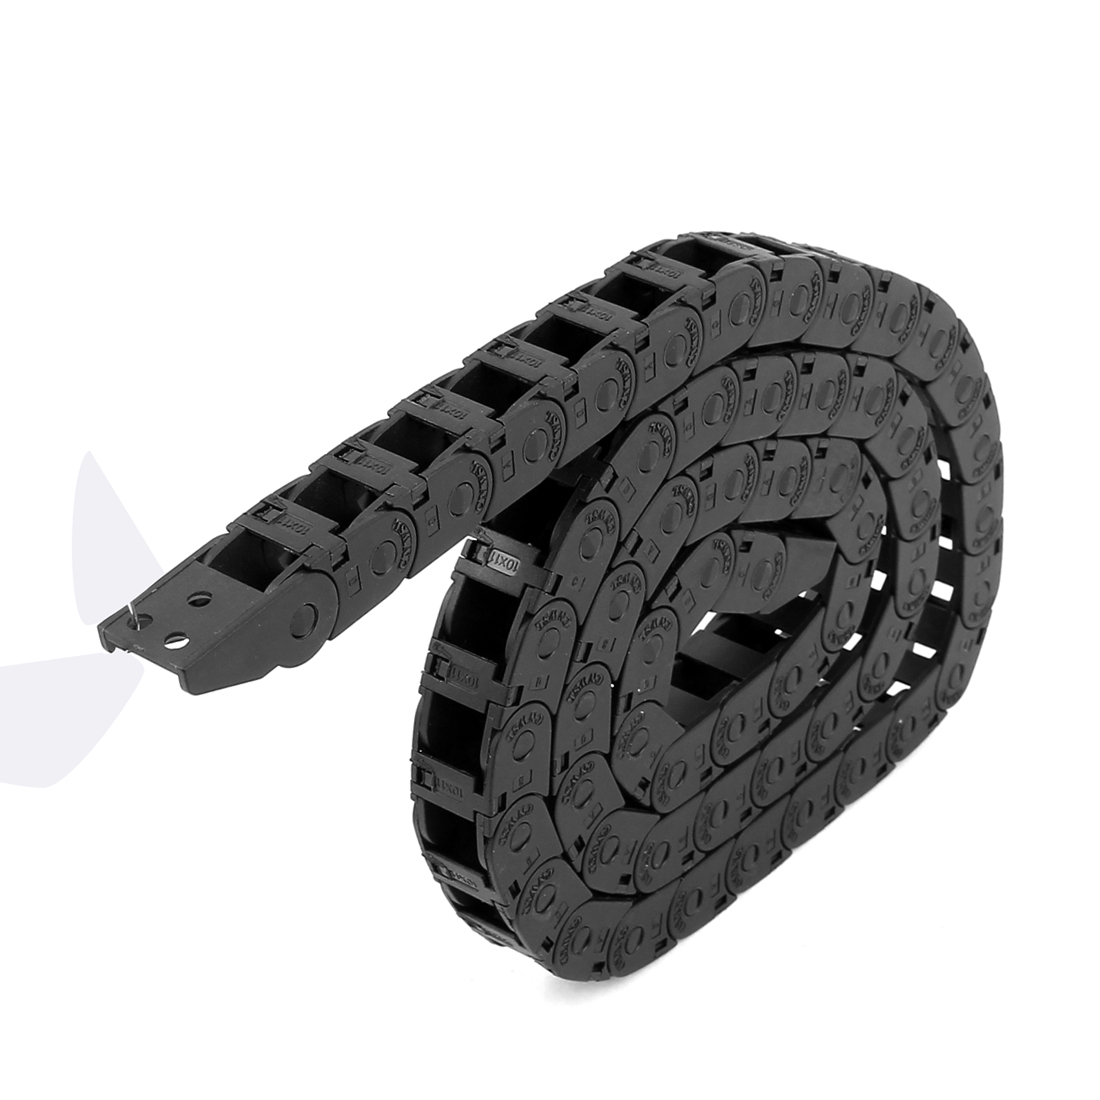 CNC Machine Plastic Open Type Towline Wire Cable Carrier Drag Chain 10mm x 11mm 100cm Length